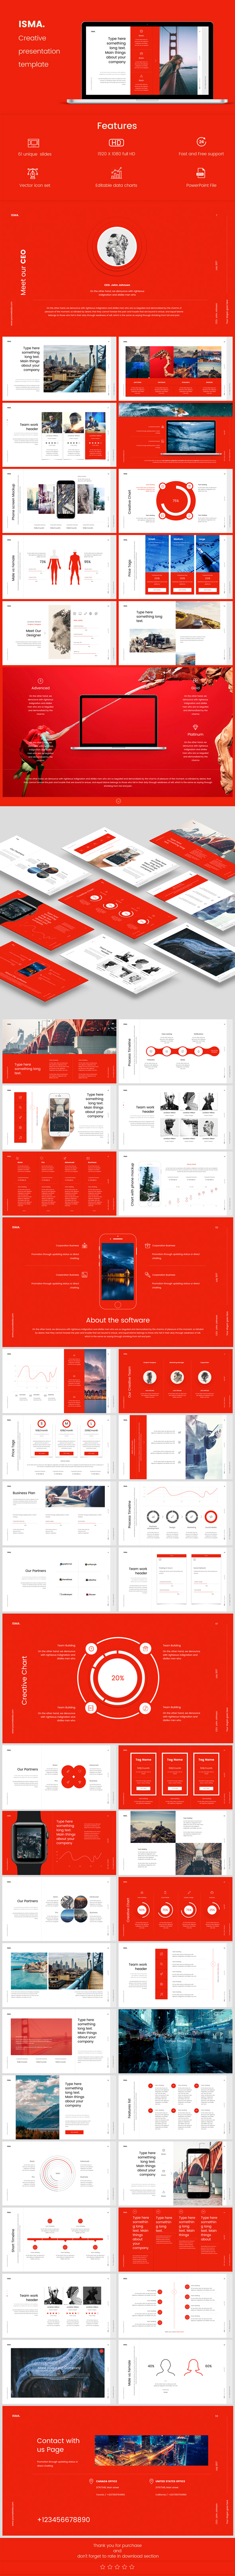 Isma PowerPoint Presentation Template - Business PowerPoint Templates